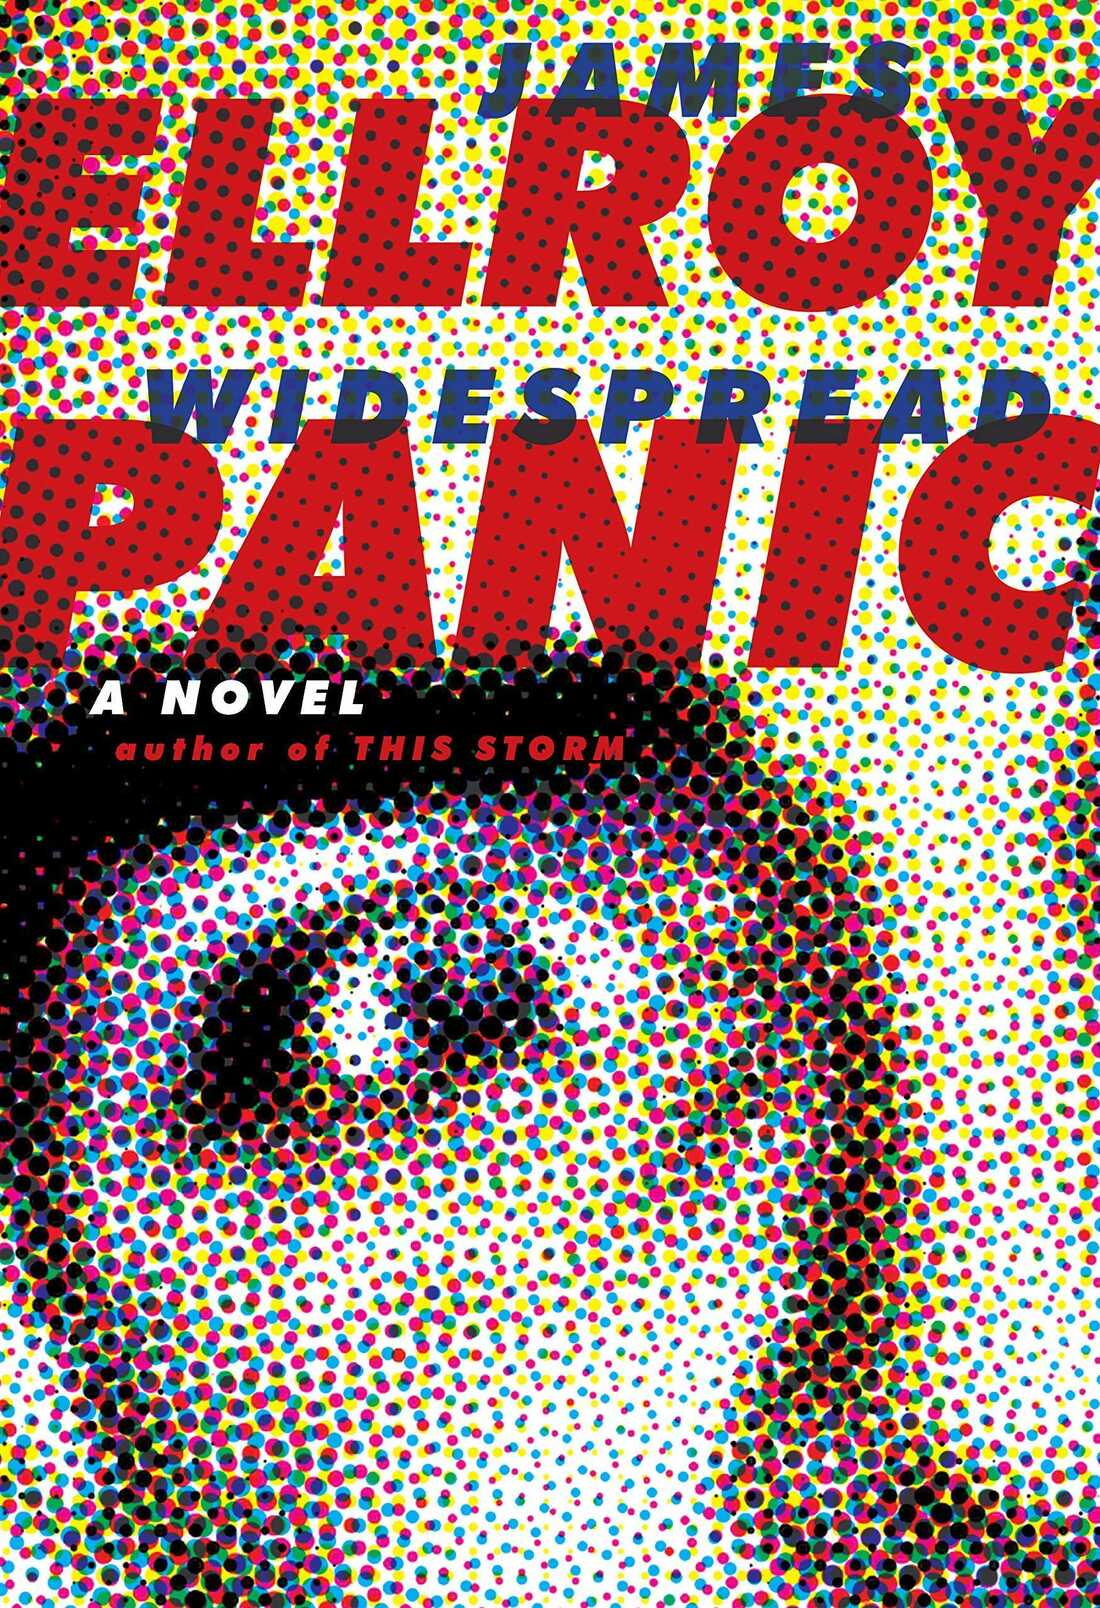 Widespread Panic, by James Ellroy